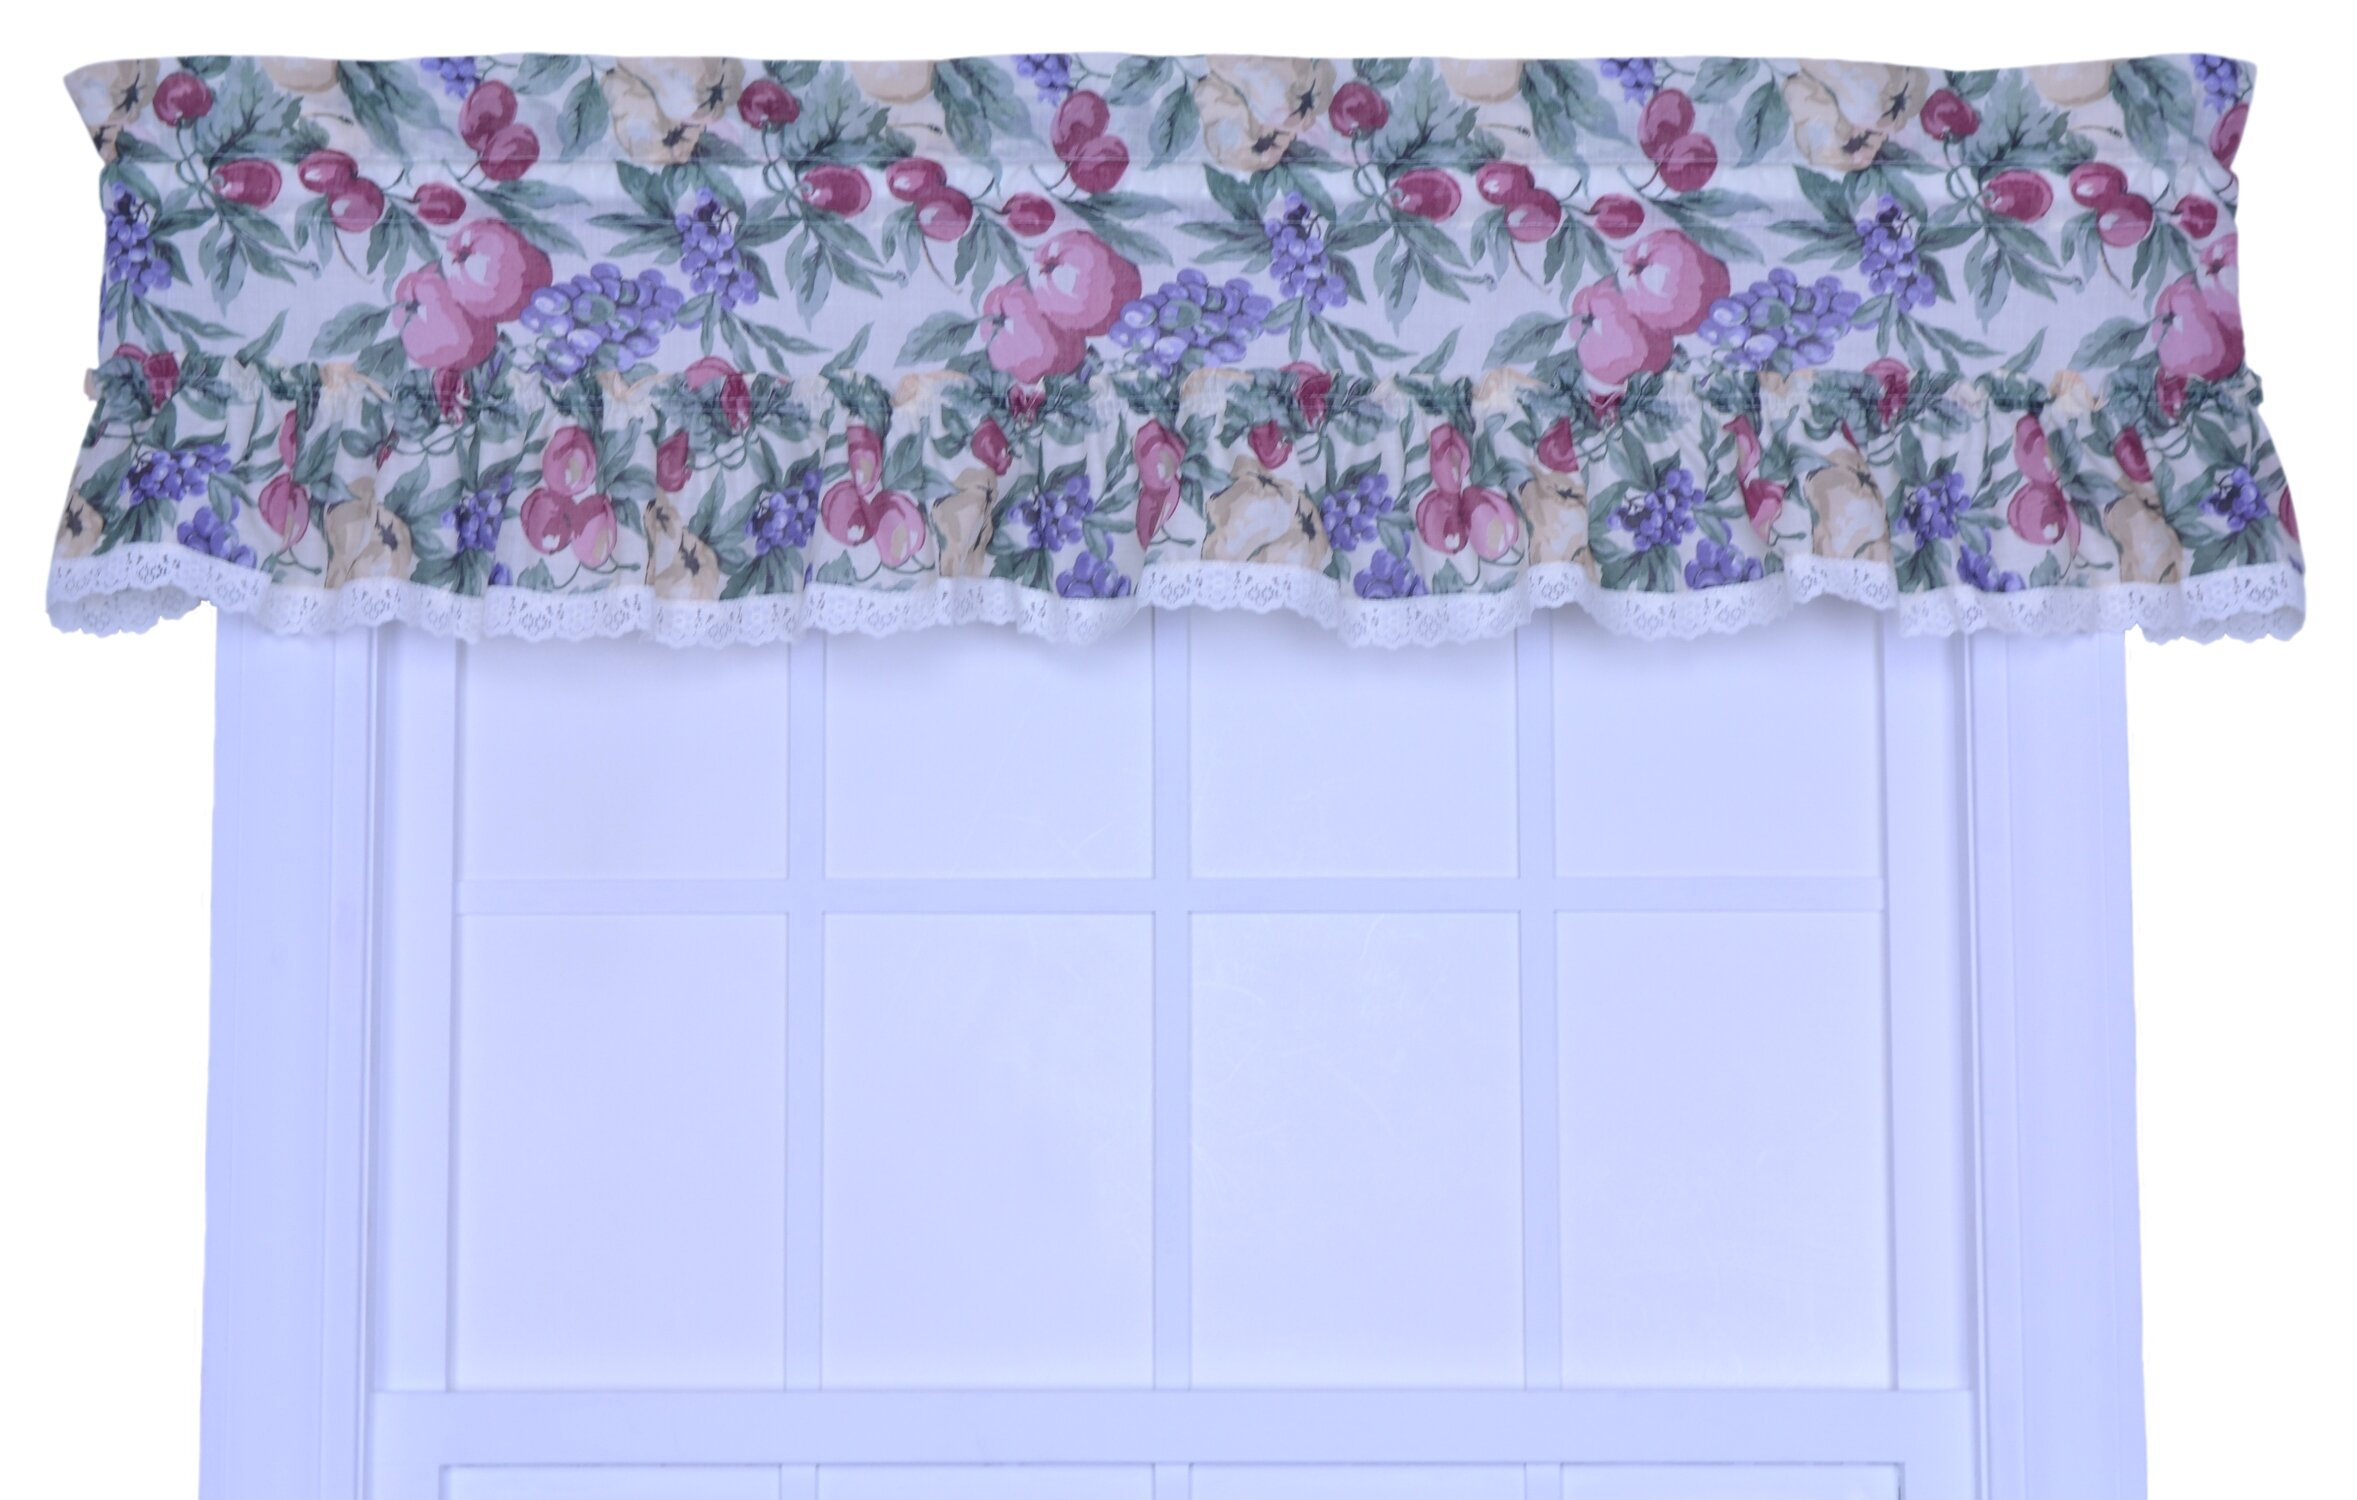 shipping home garden double rod w valance collection on rosetta rt in curtain free orders with jacquard designers inch attached panel pocket product over